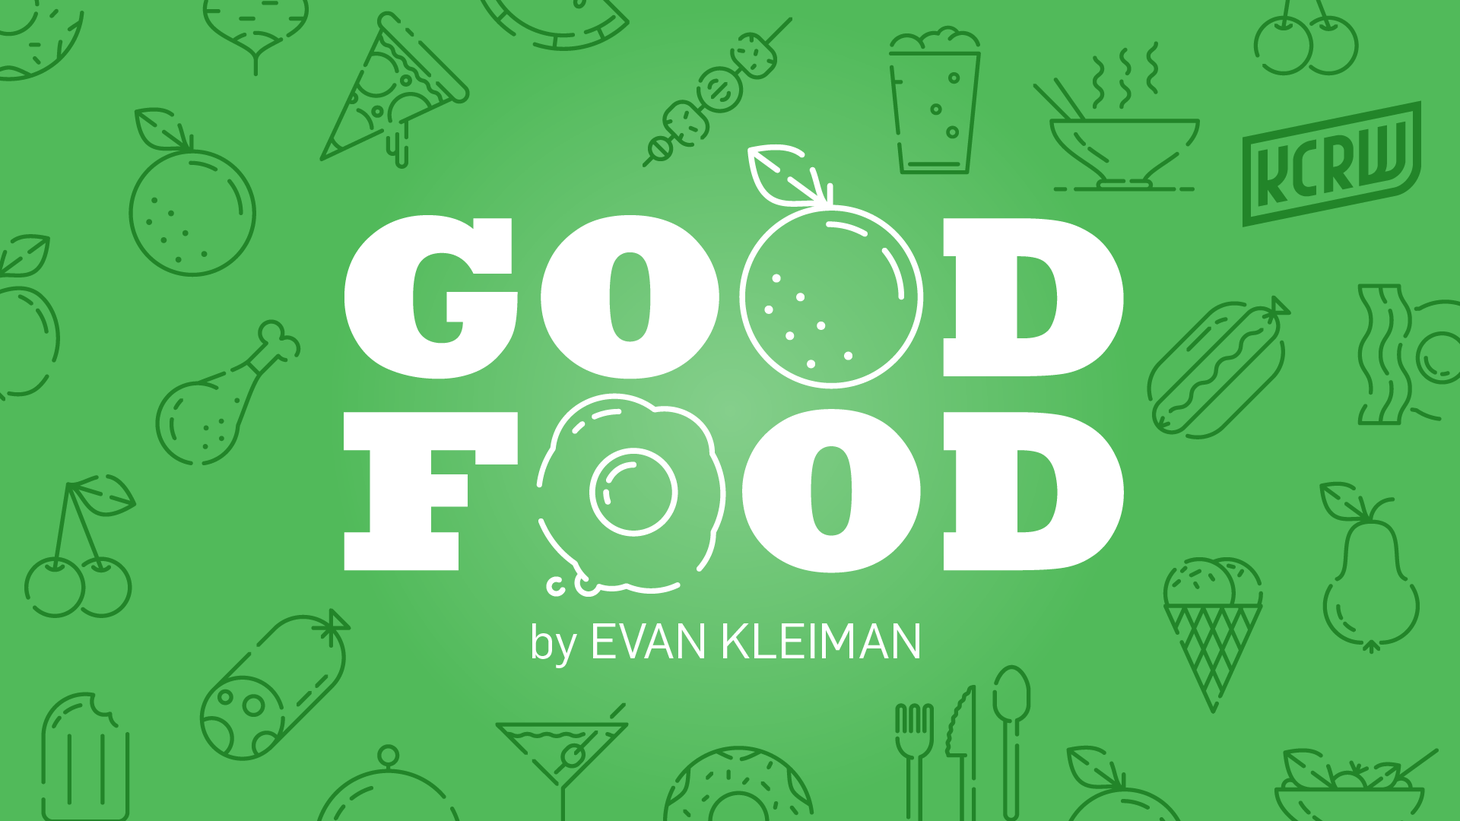 This week on Good Food, we'll talk with Rod Lincoln, director of the Clinton, Montana Testicle Festival (Rocky Mountain oysters, anyone?); we also welcome back Harold McGee, our food scientist who'll serve up some information on the origins of katsup; Jan Weimer, our kitchen design expert, is in the studio today to talk about some of the myths about wine storage; and our Hidden Treasure expert Jonathan Gold shares a new dig for us to try.